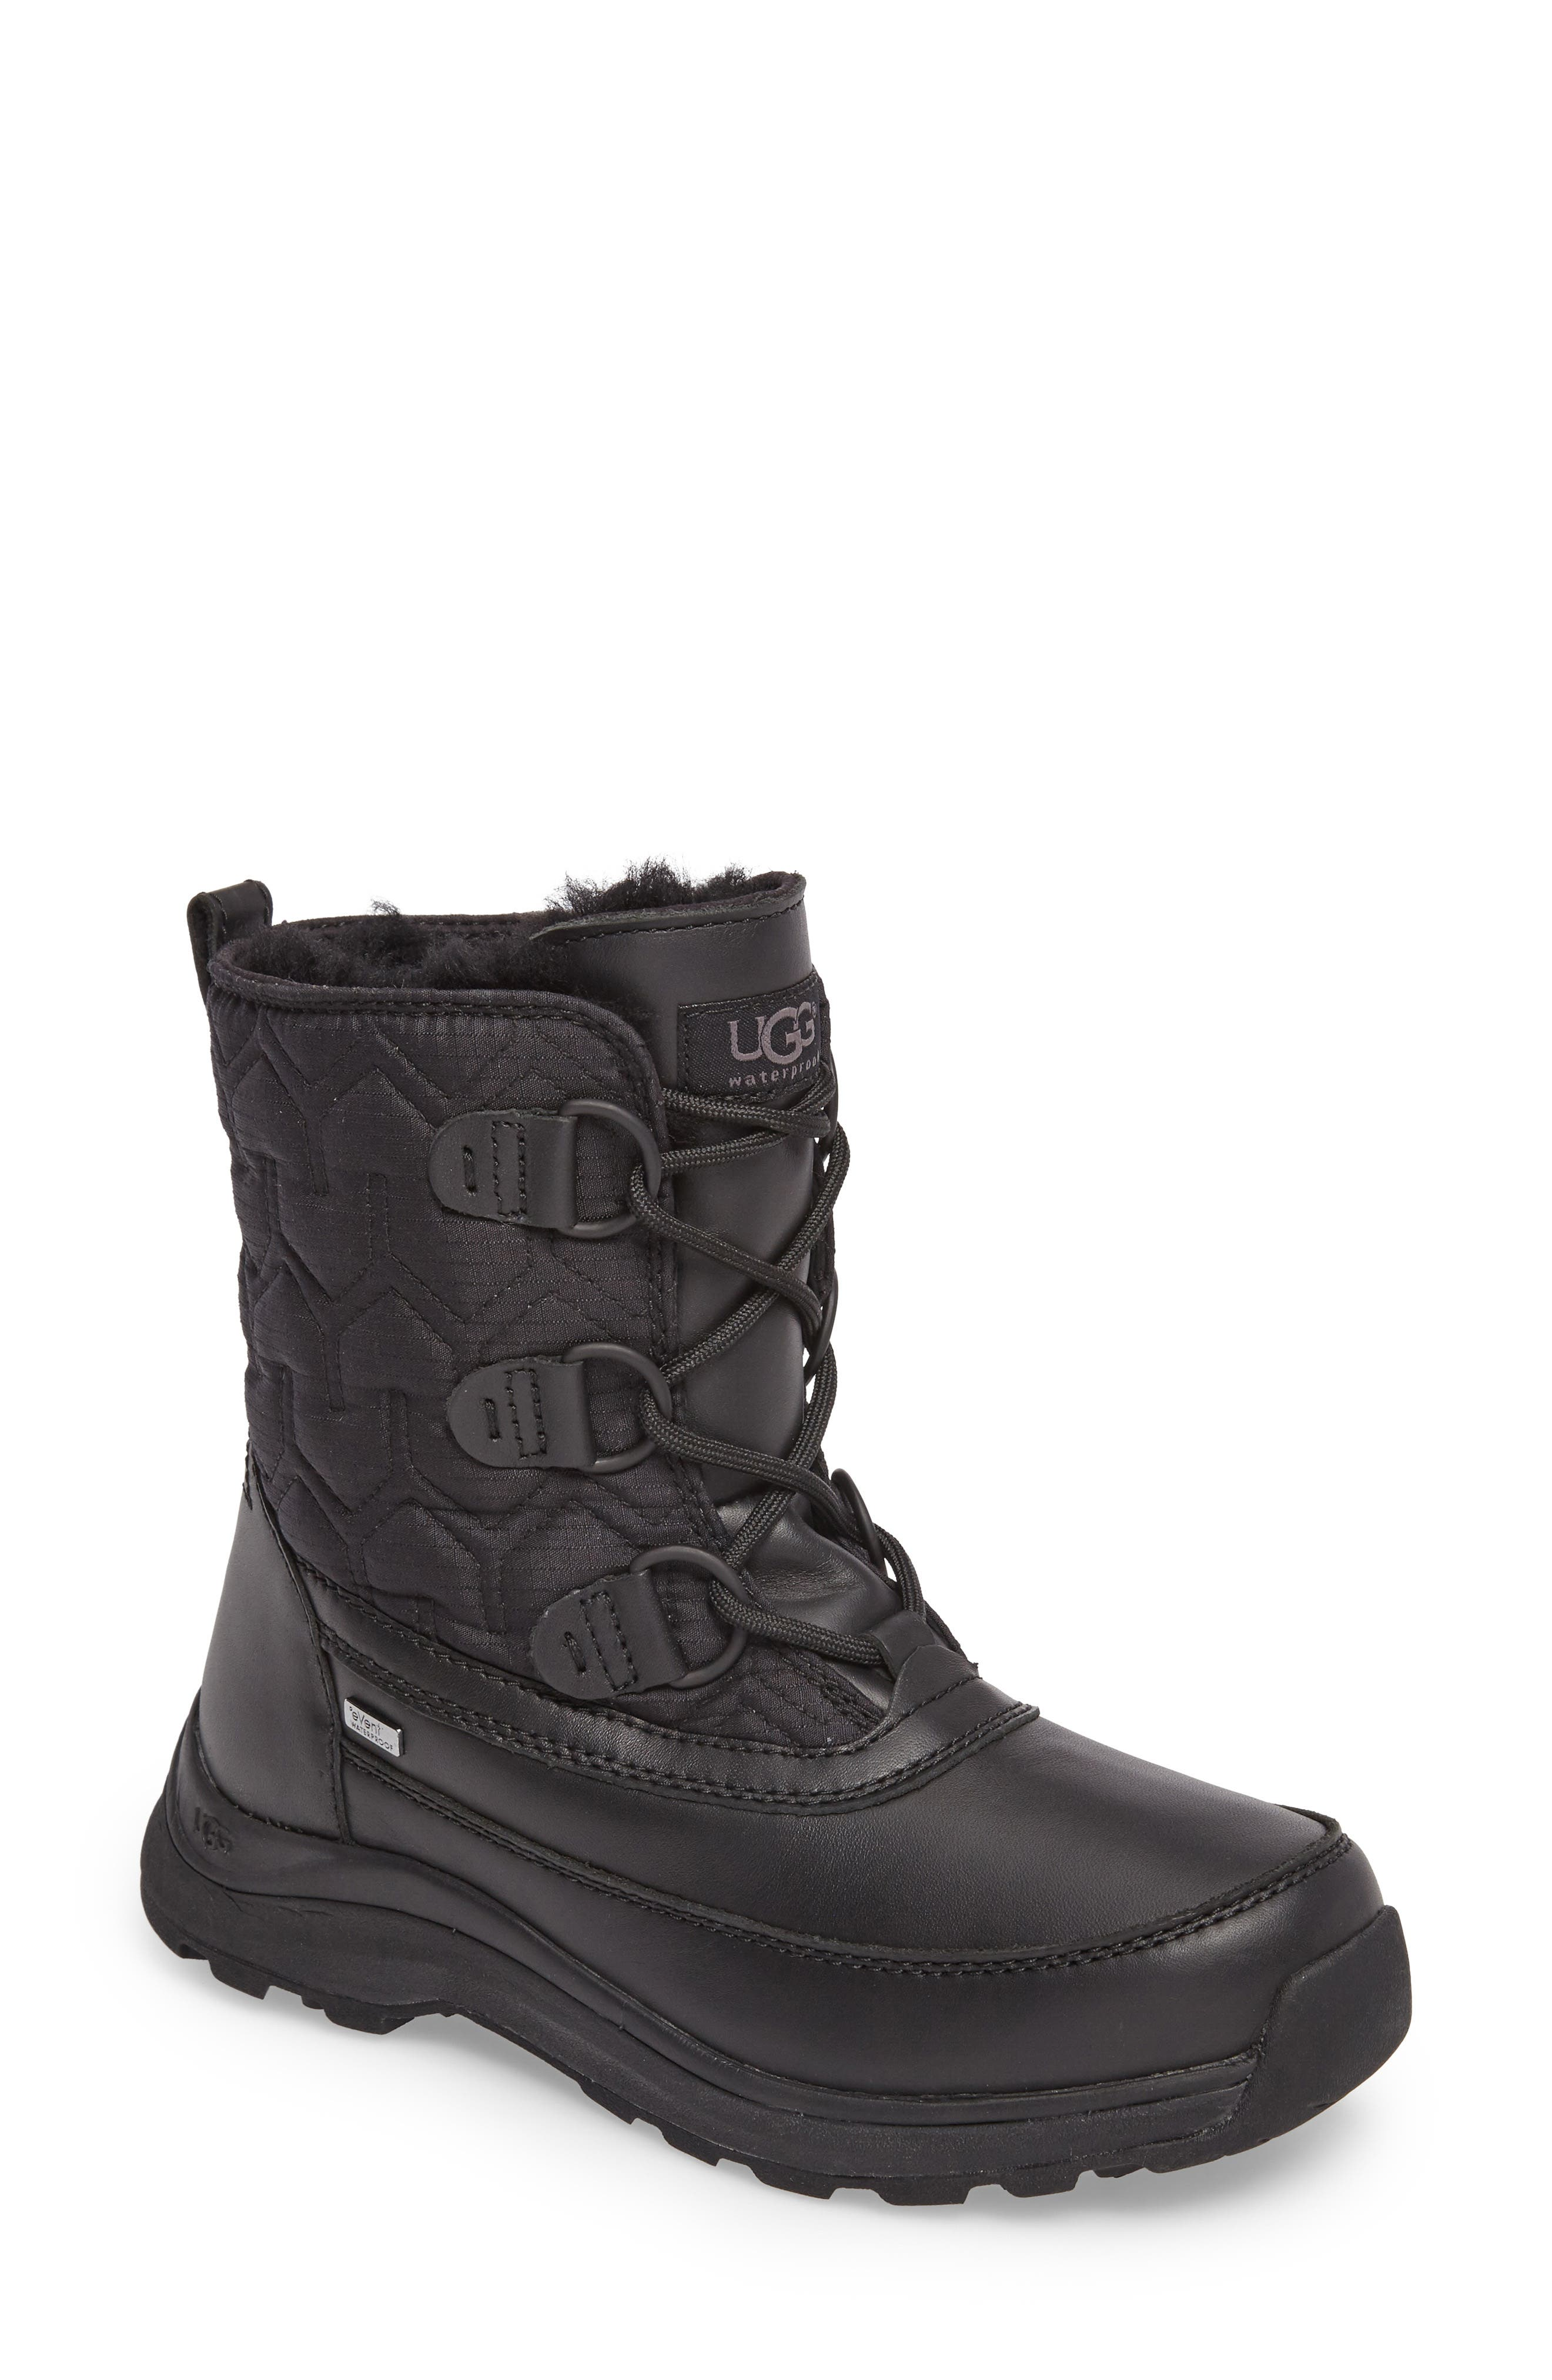 Main Image - UGG® Lachlan Waterproof Insulated Snow Boot (Women)